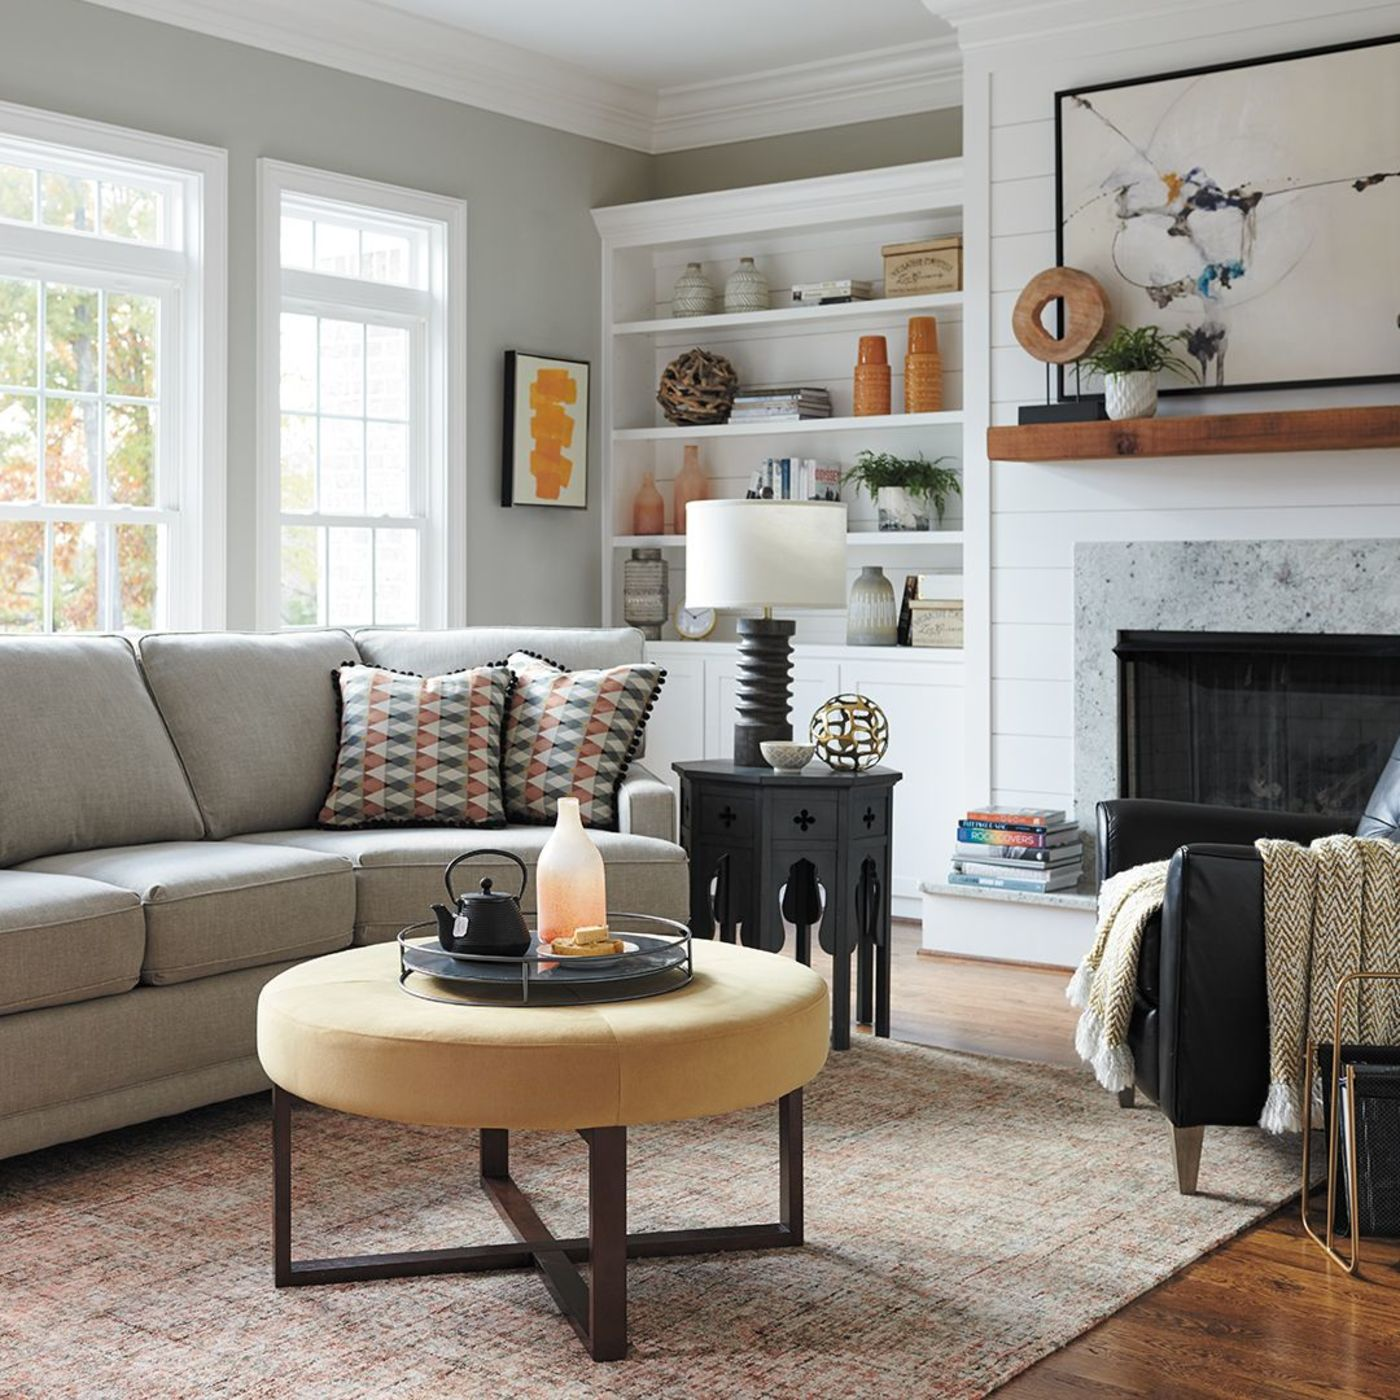 6 Decor Tips For Guest And Master Bedrooms